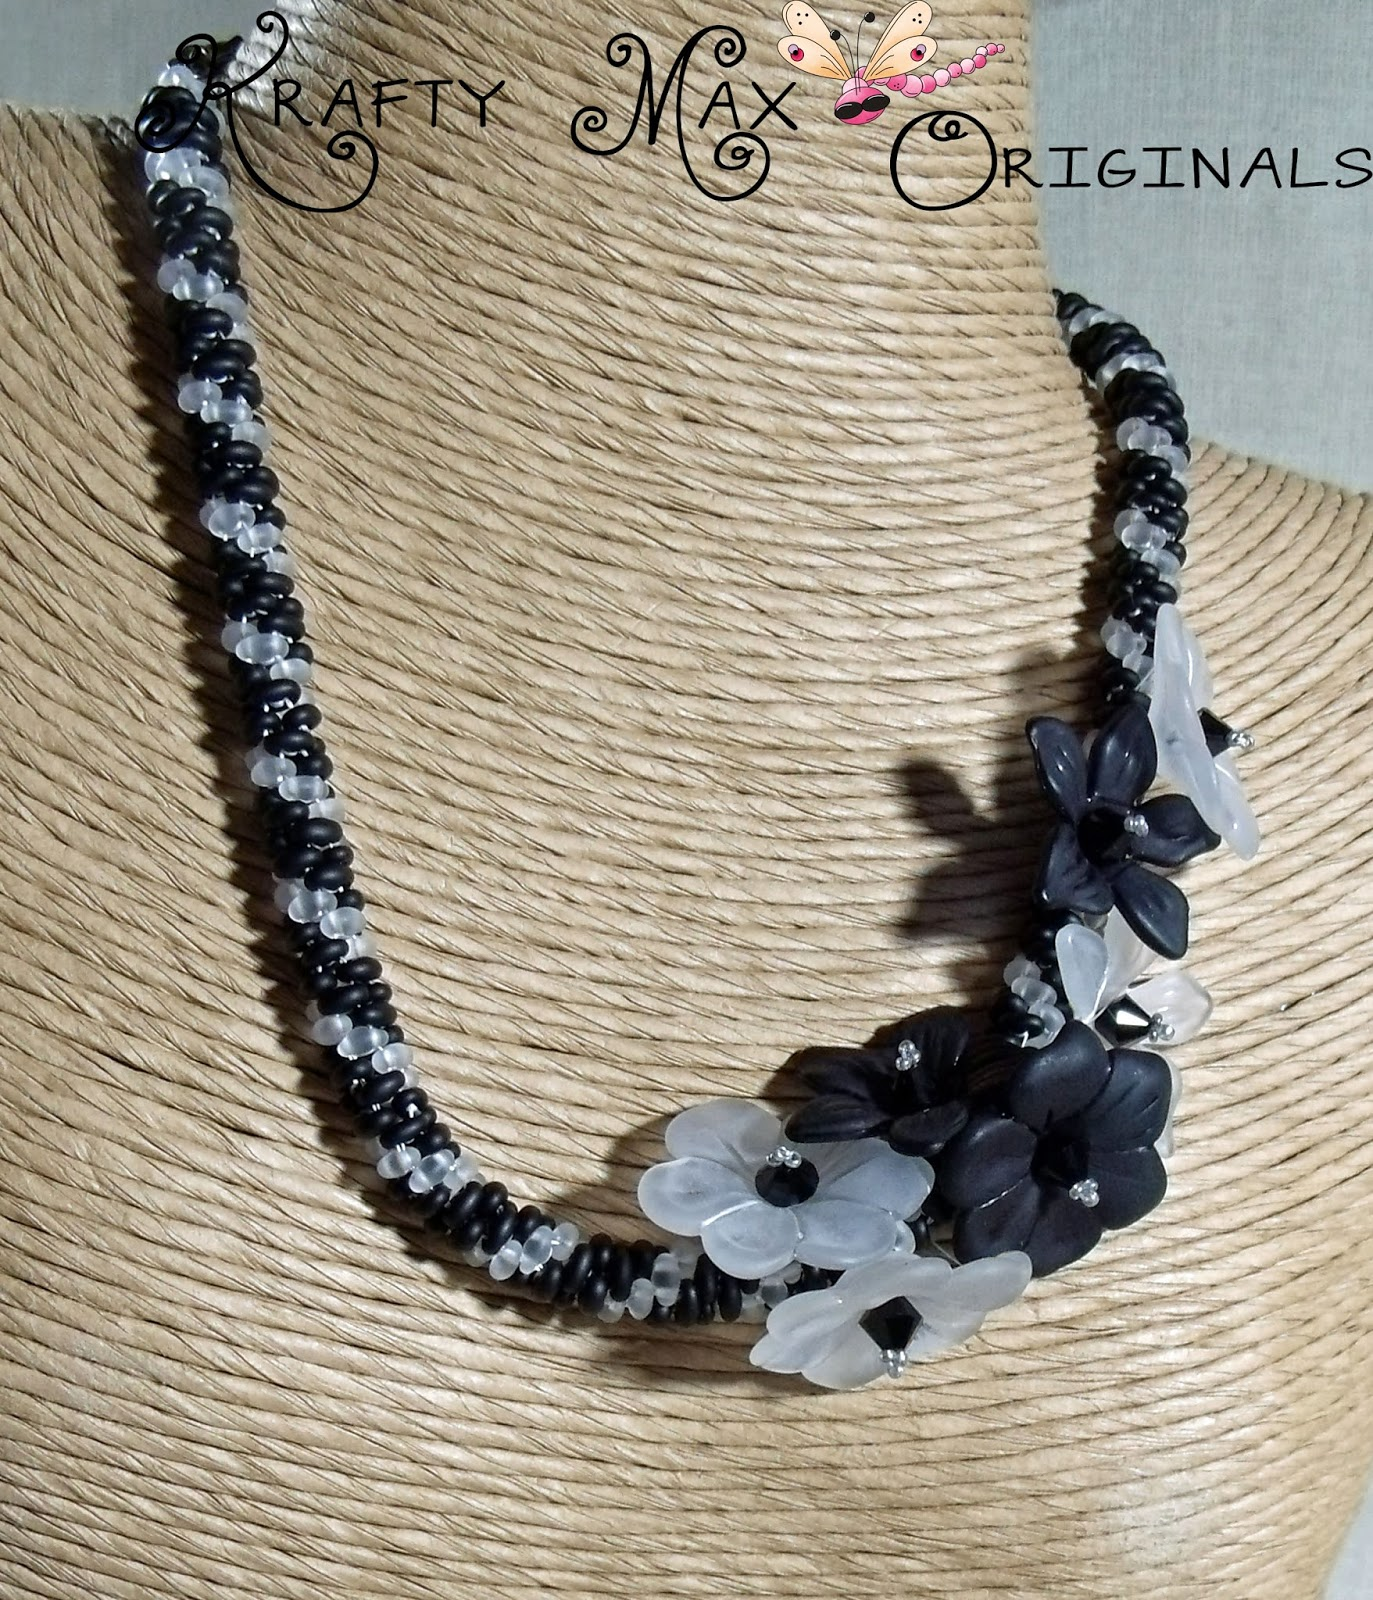 http://www.lajuliet.com/index.php/2013-01-04-15-21-51/ad/beadwork,46/exclusive-black-and-white-flowery-grace-beadwoven-necklace-a-krafty-max-original-design,346